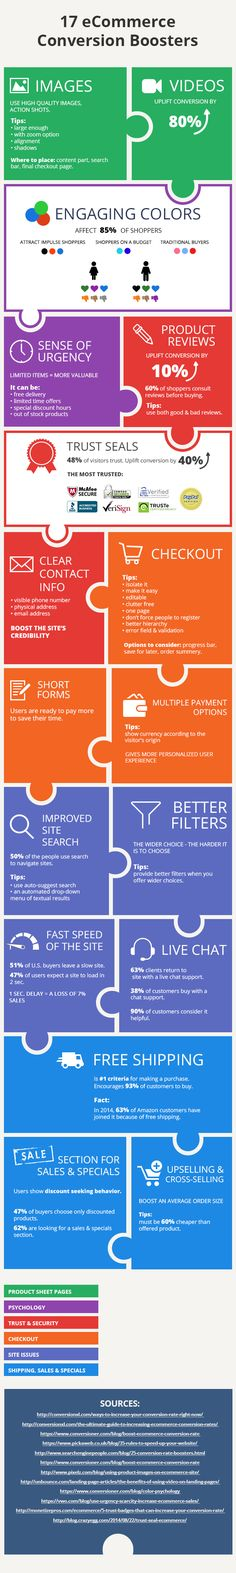 Learn How to Improve Conversion Rate of Online Store #ecommerce